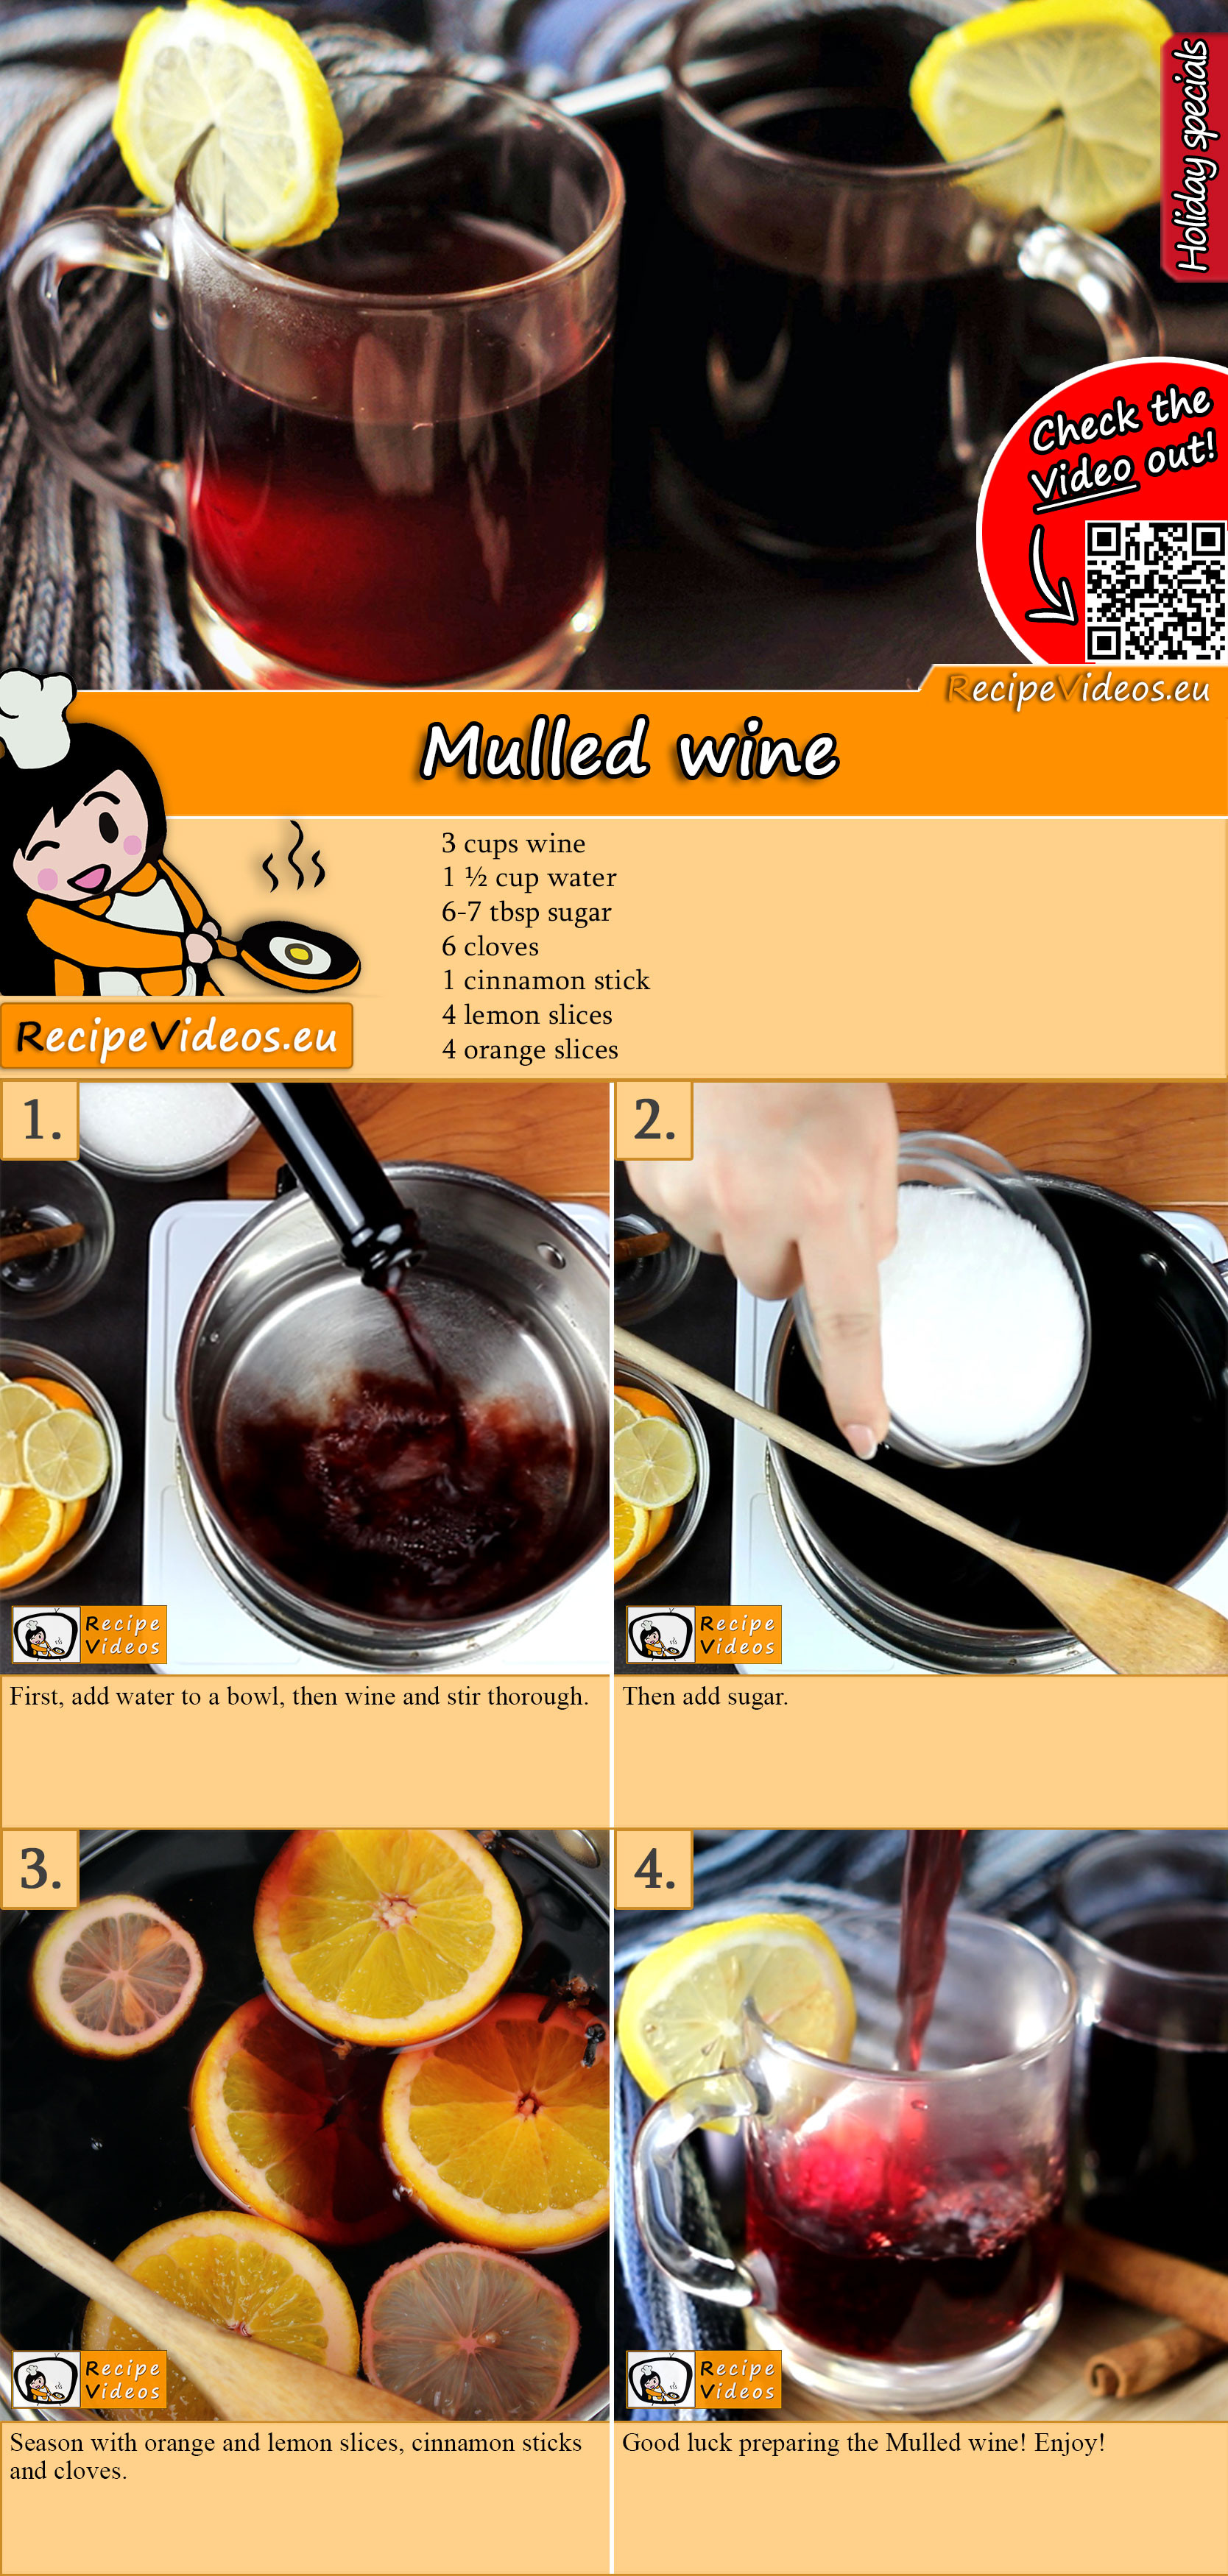 Mulled wine recipe with video